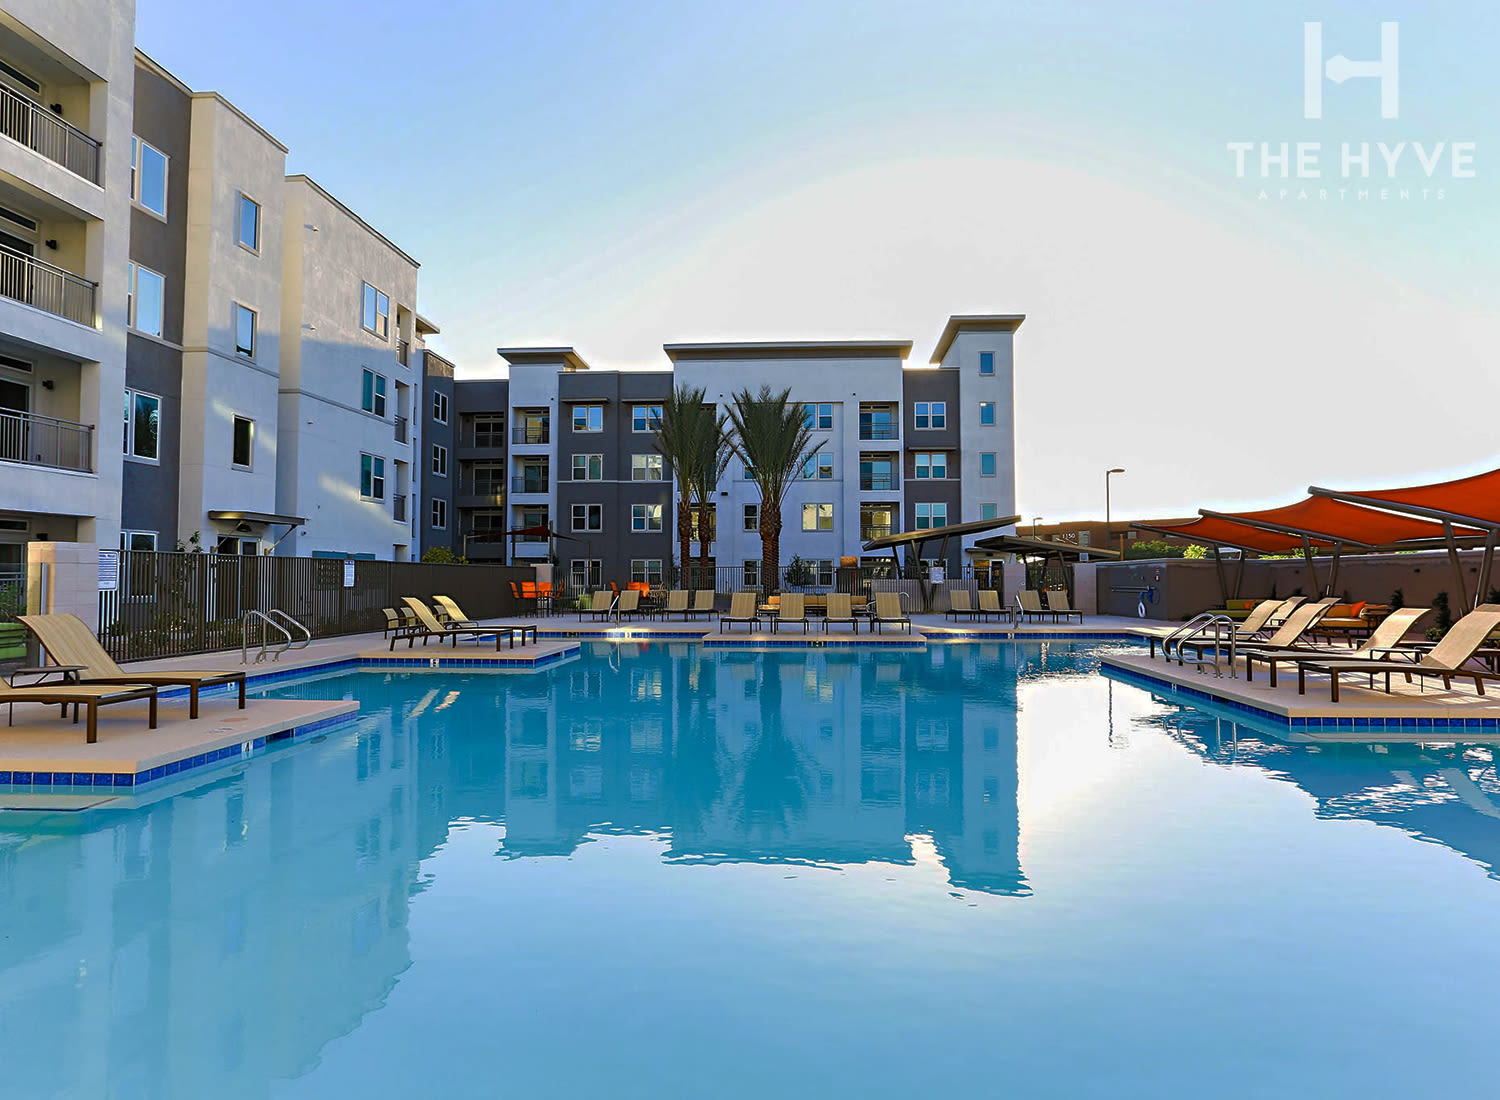 The Hyve apartments in Tempe, Arizona